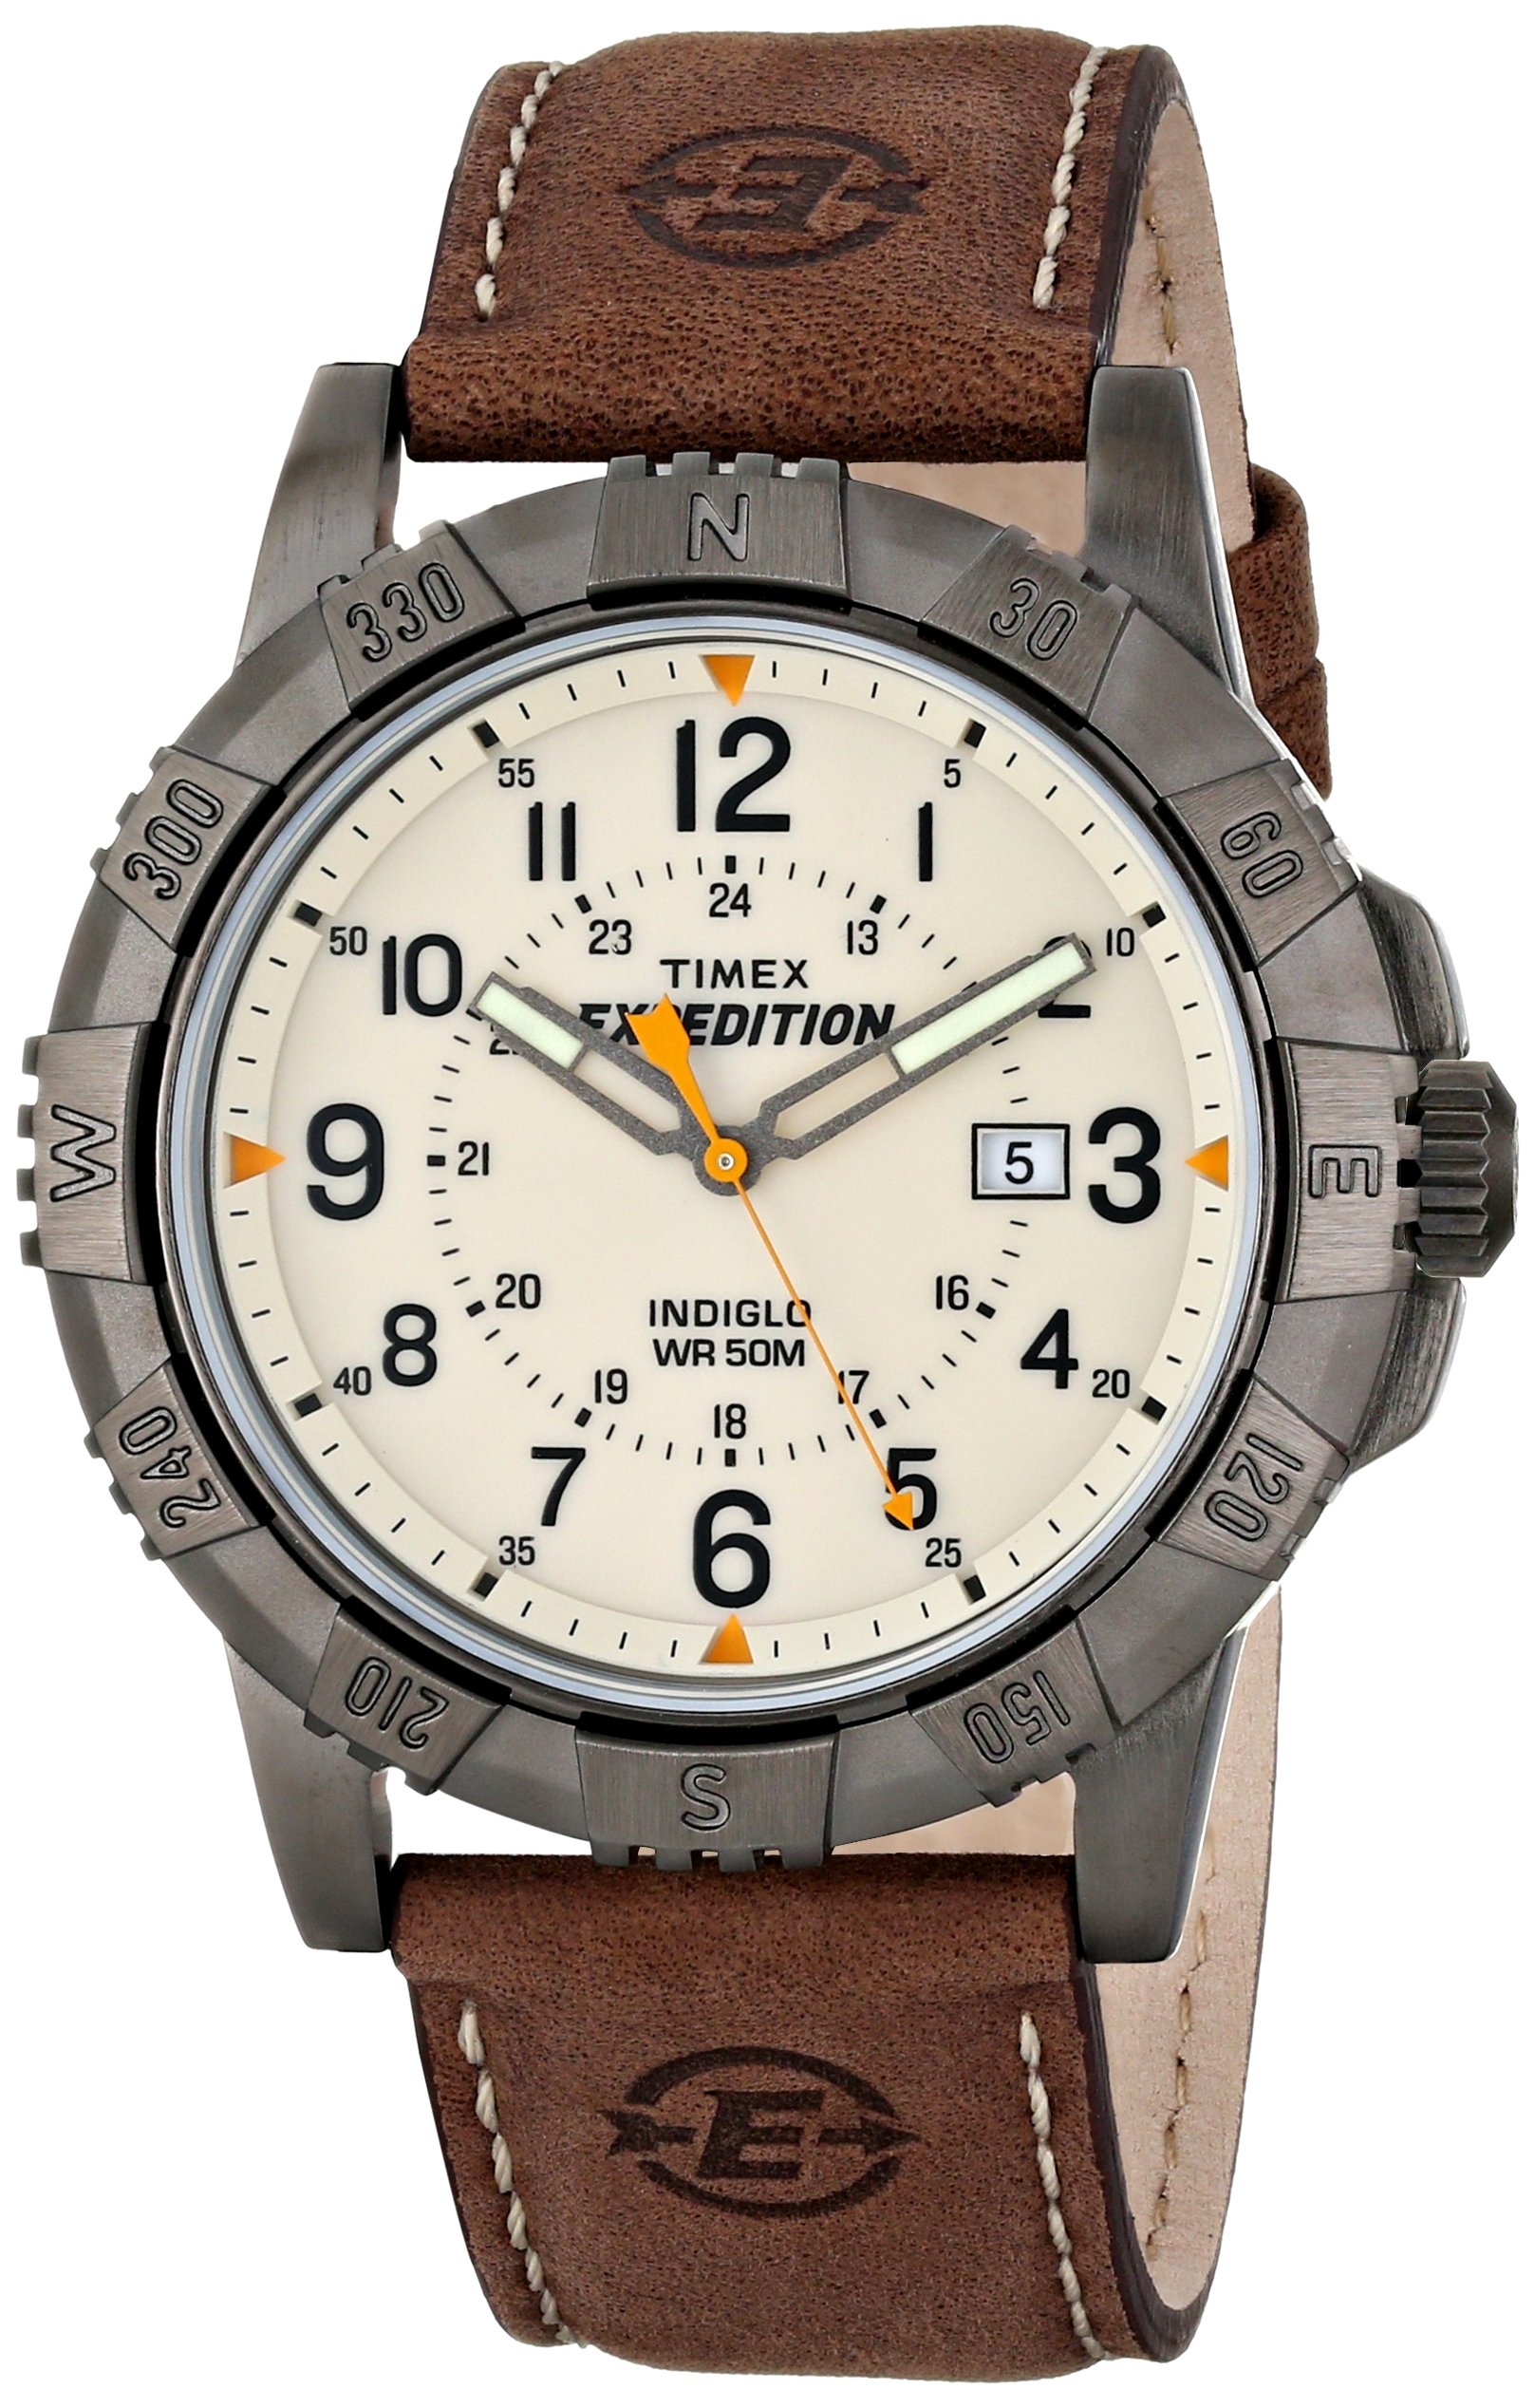 Timex Men's T49990 Expedition Rugged Metal Brown/Natural Leather Strap Watch by Timex